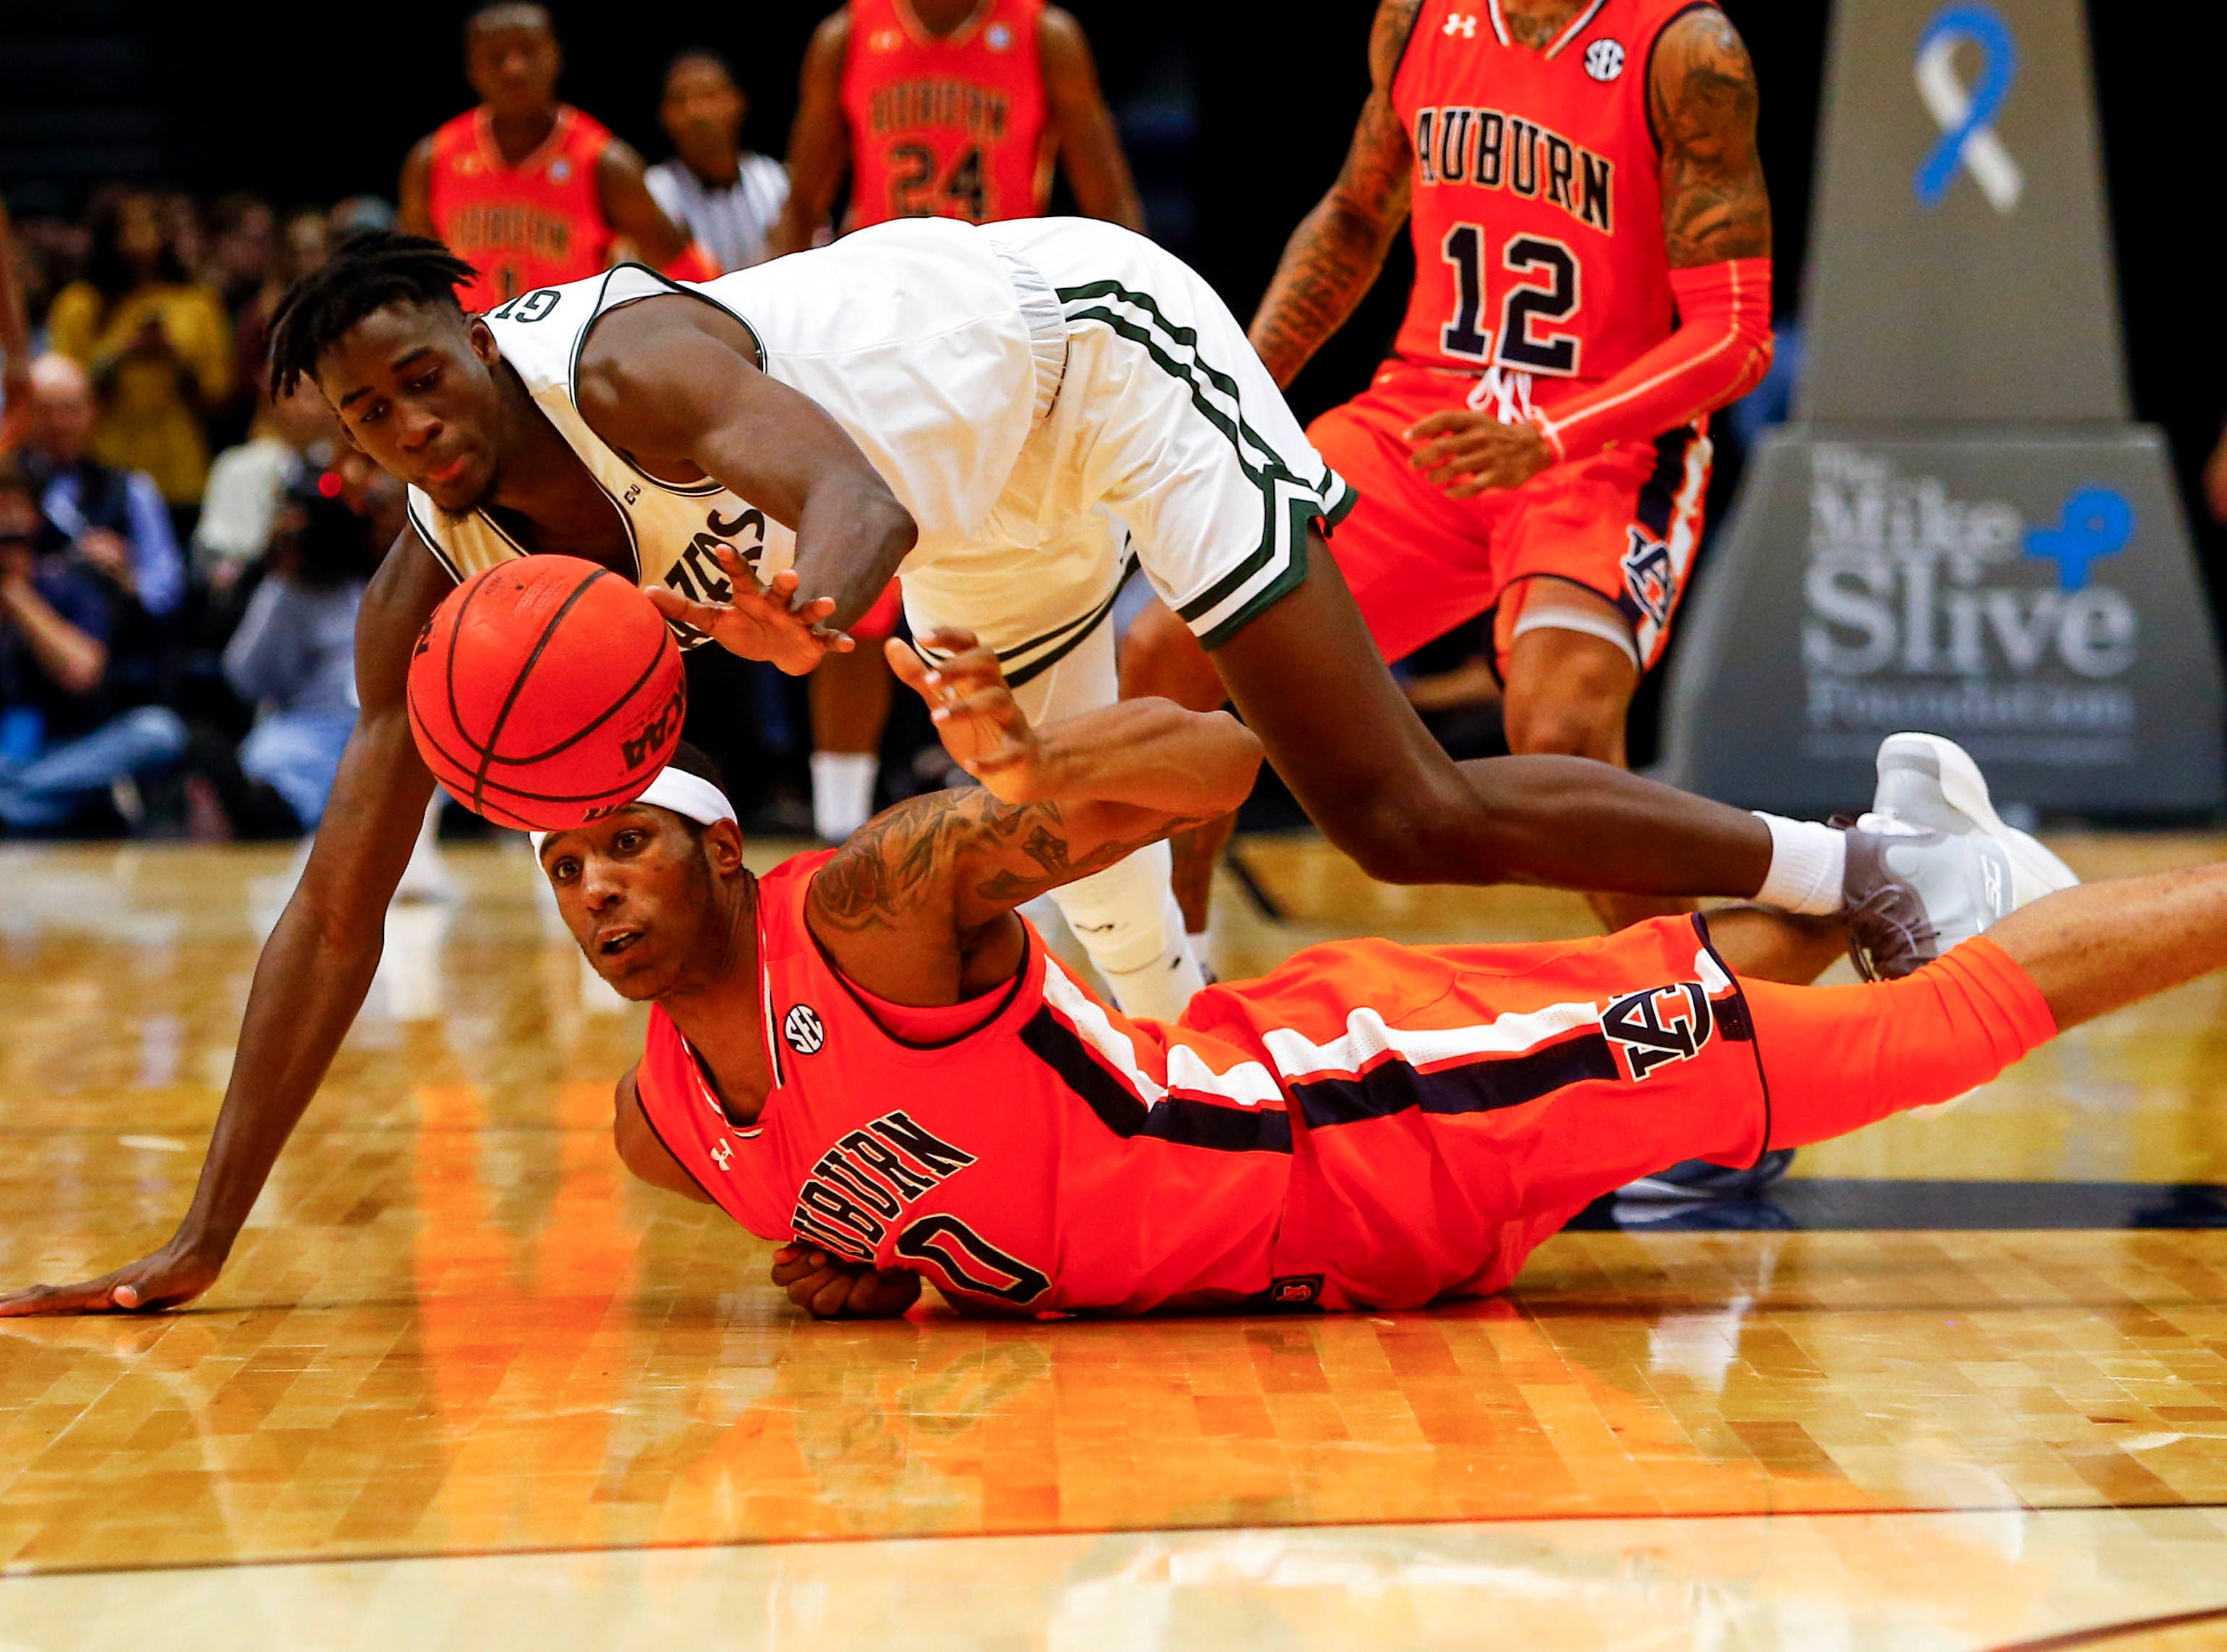 Dec 15, 2018; Birmingham, AL, USA; Auburn Tigers forward Horace Spencer (0) and UAB Blazers forward Makhtar Gueye (5) scramble for a loose ball during the second half of an NCAA basketball game at Legacy Arena. Mandatory Credit: Butch Dill-USA TODAY Sports